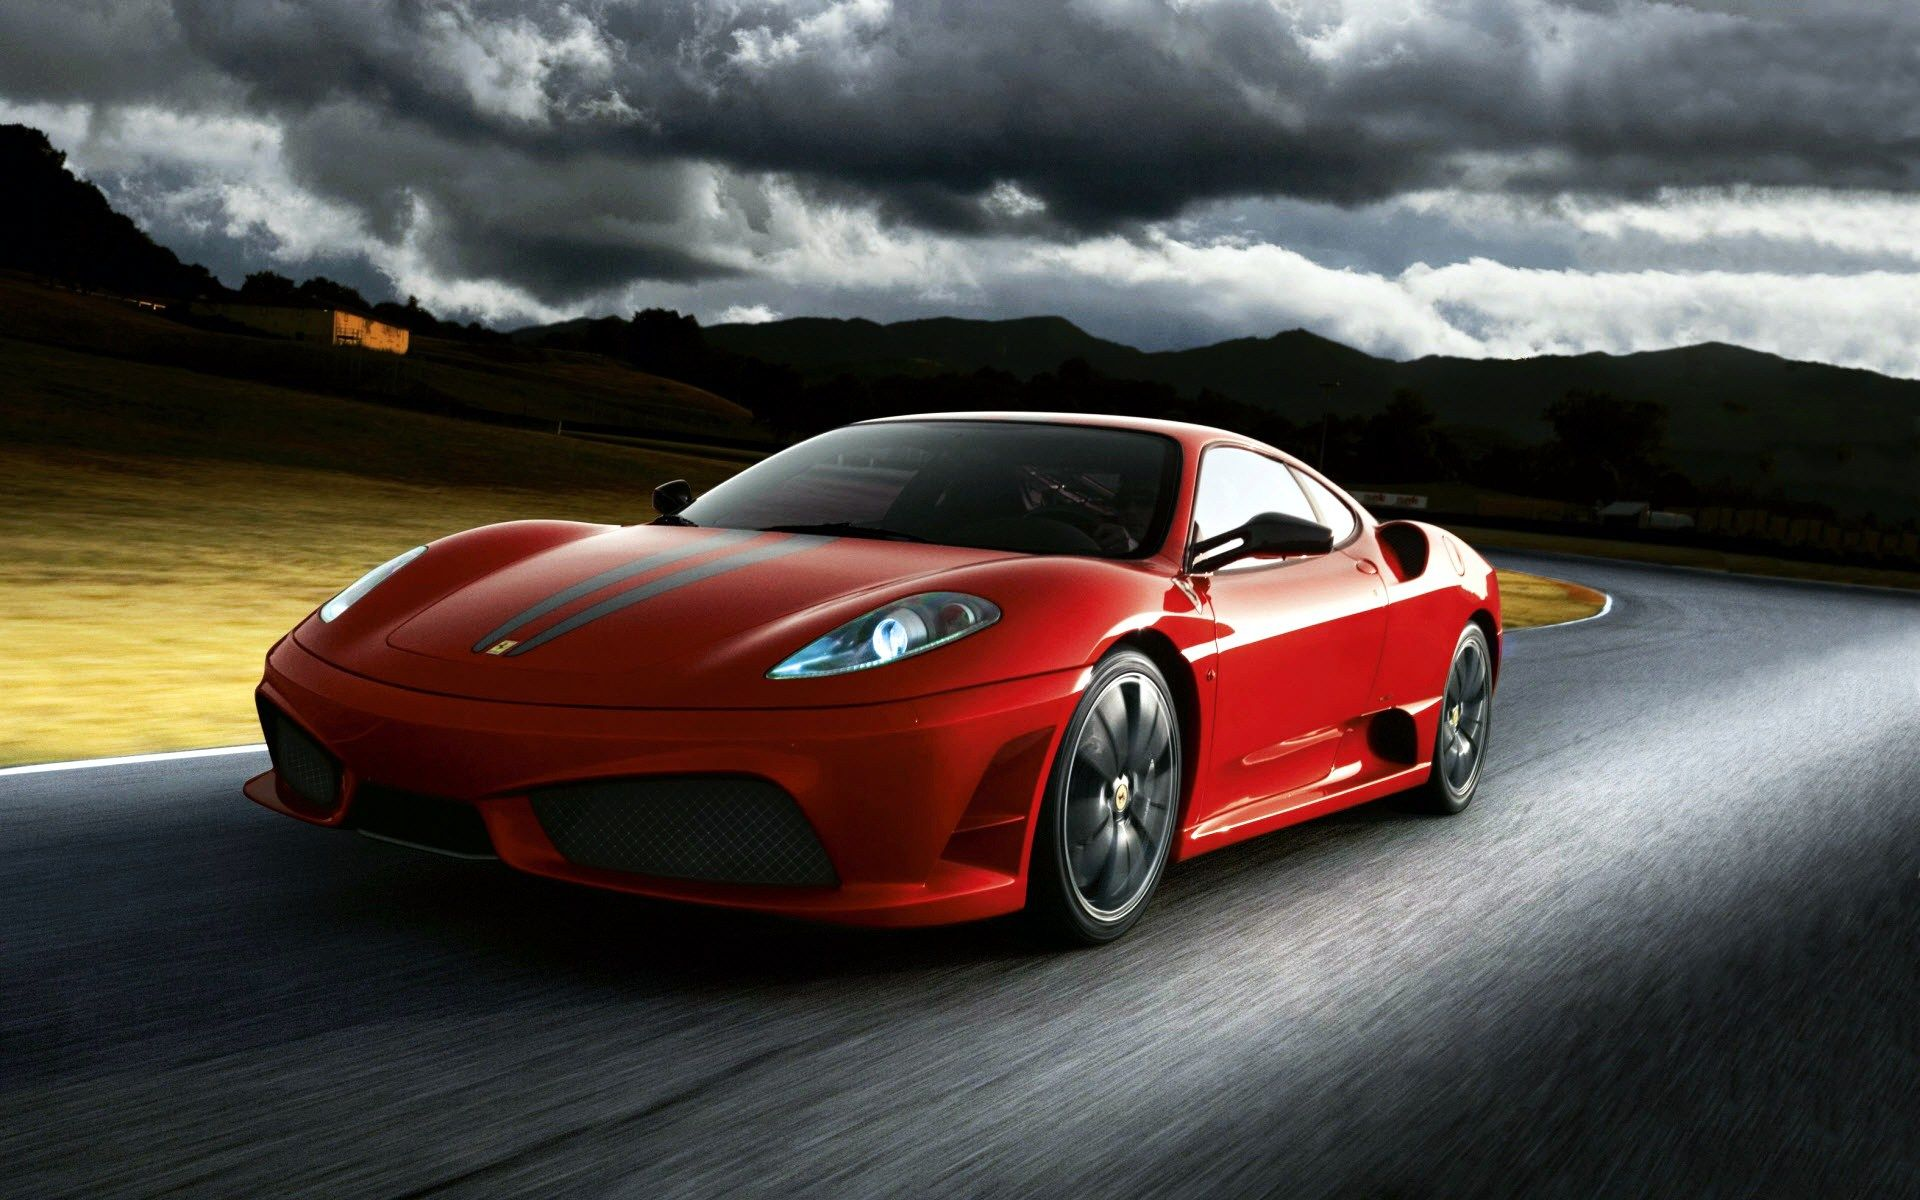 Ferrari Desktop Wallpapers Wallpapers Wallpapers For Desktop